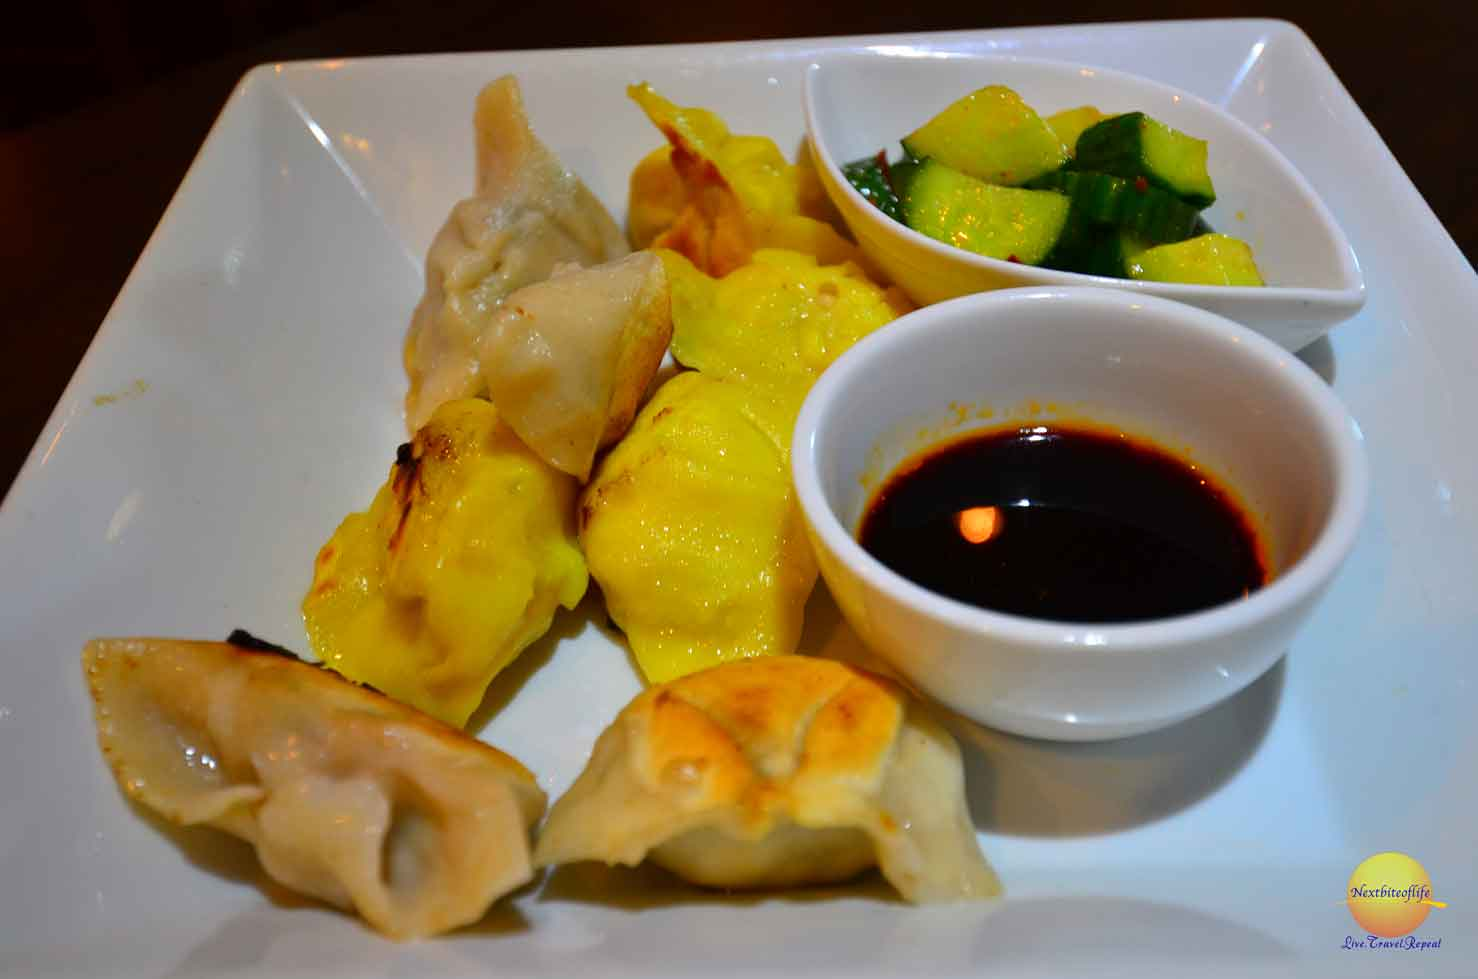 Love dumplings and we had our fill.